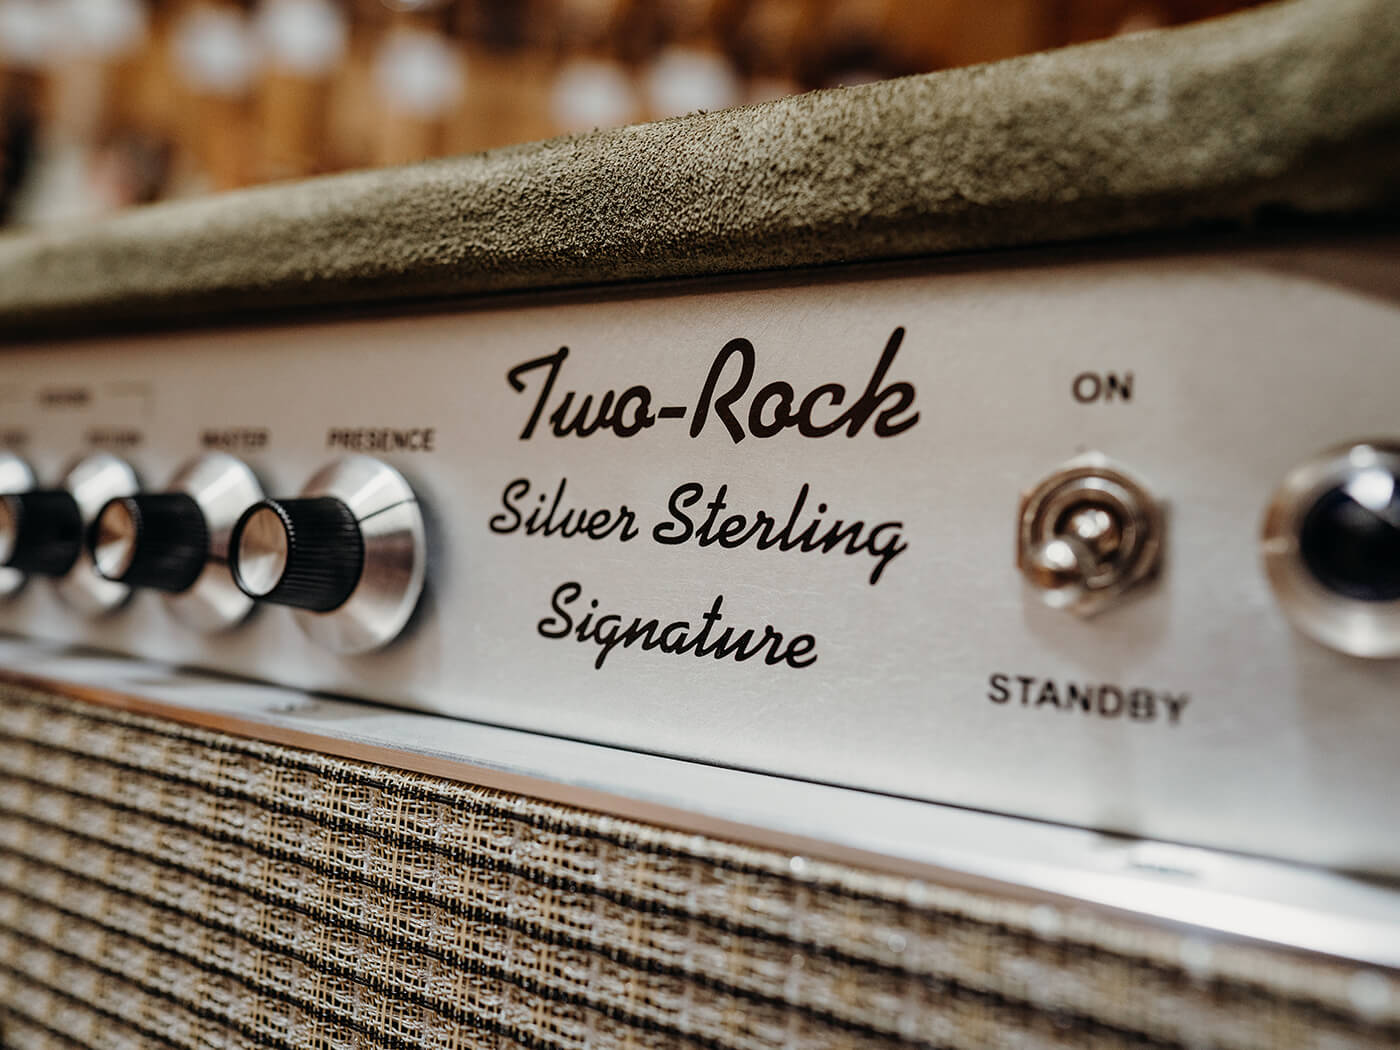 Two-Rock Silver Sterling Signature